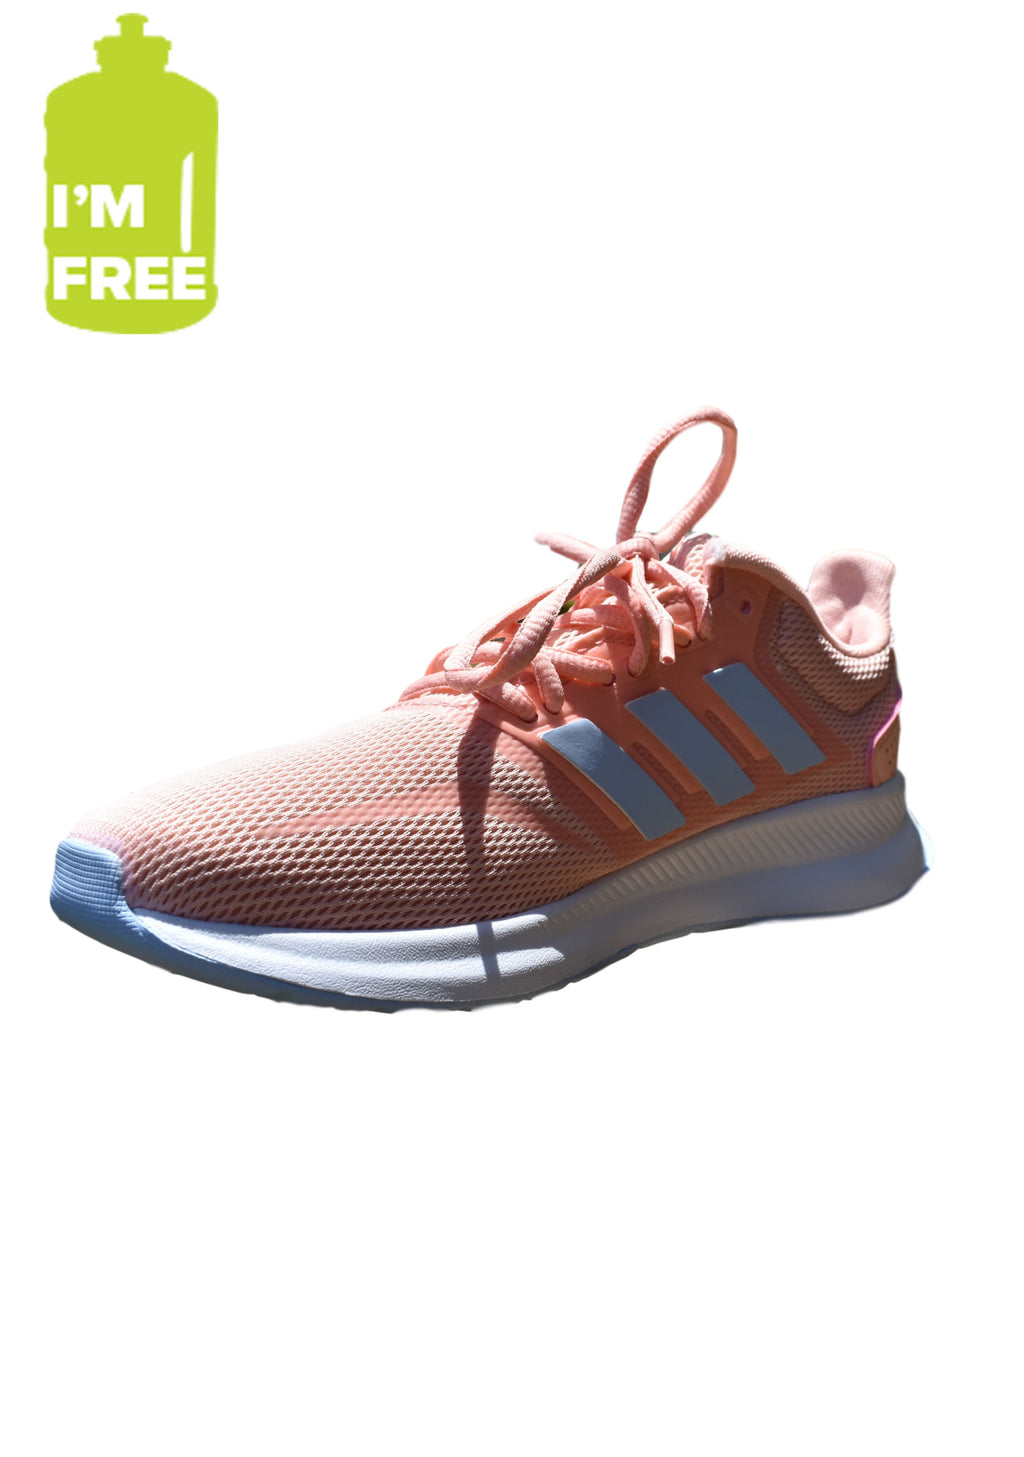 ADIDAS WOMENS RUNFALCON WITH FREE 2L WATER BOTTLE <BR> EG9032